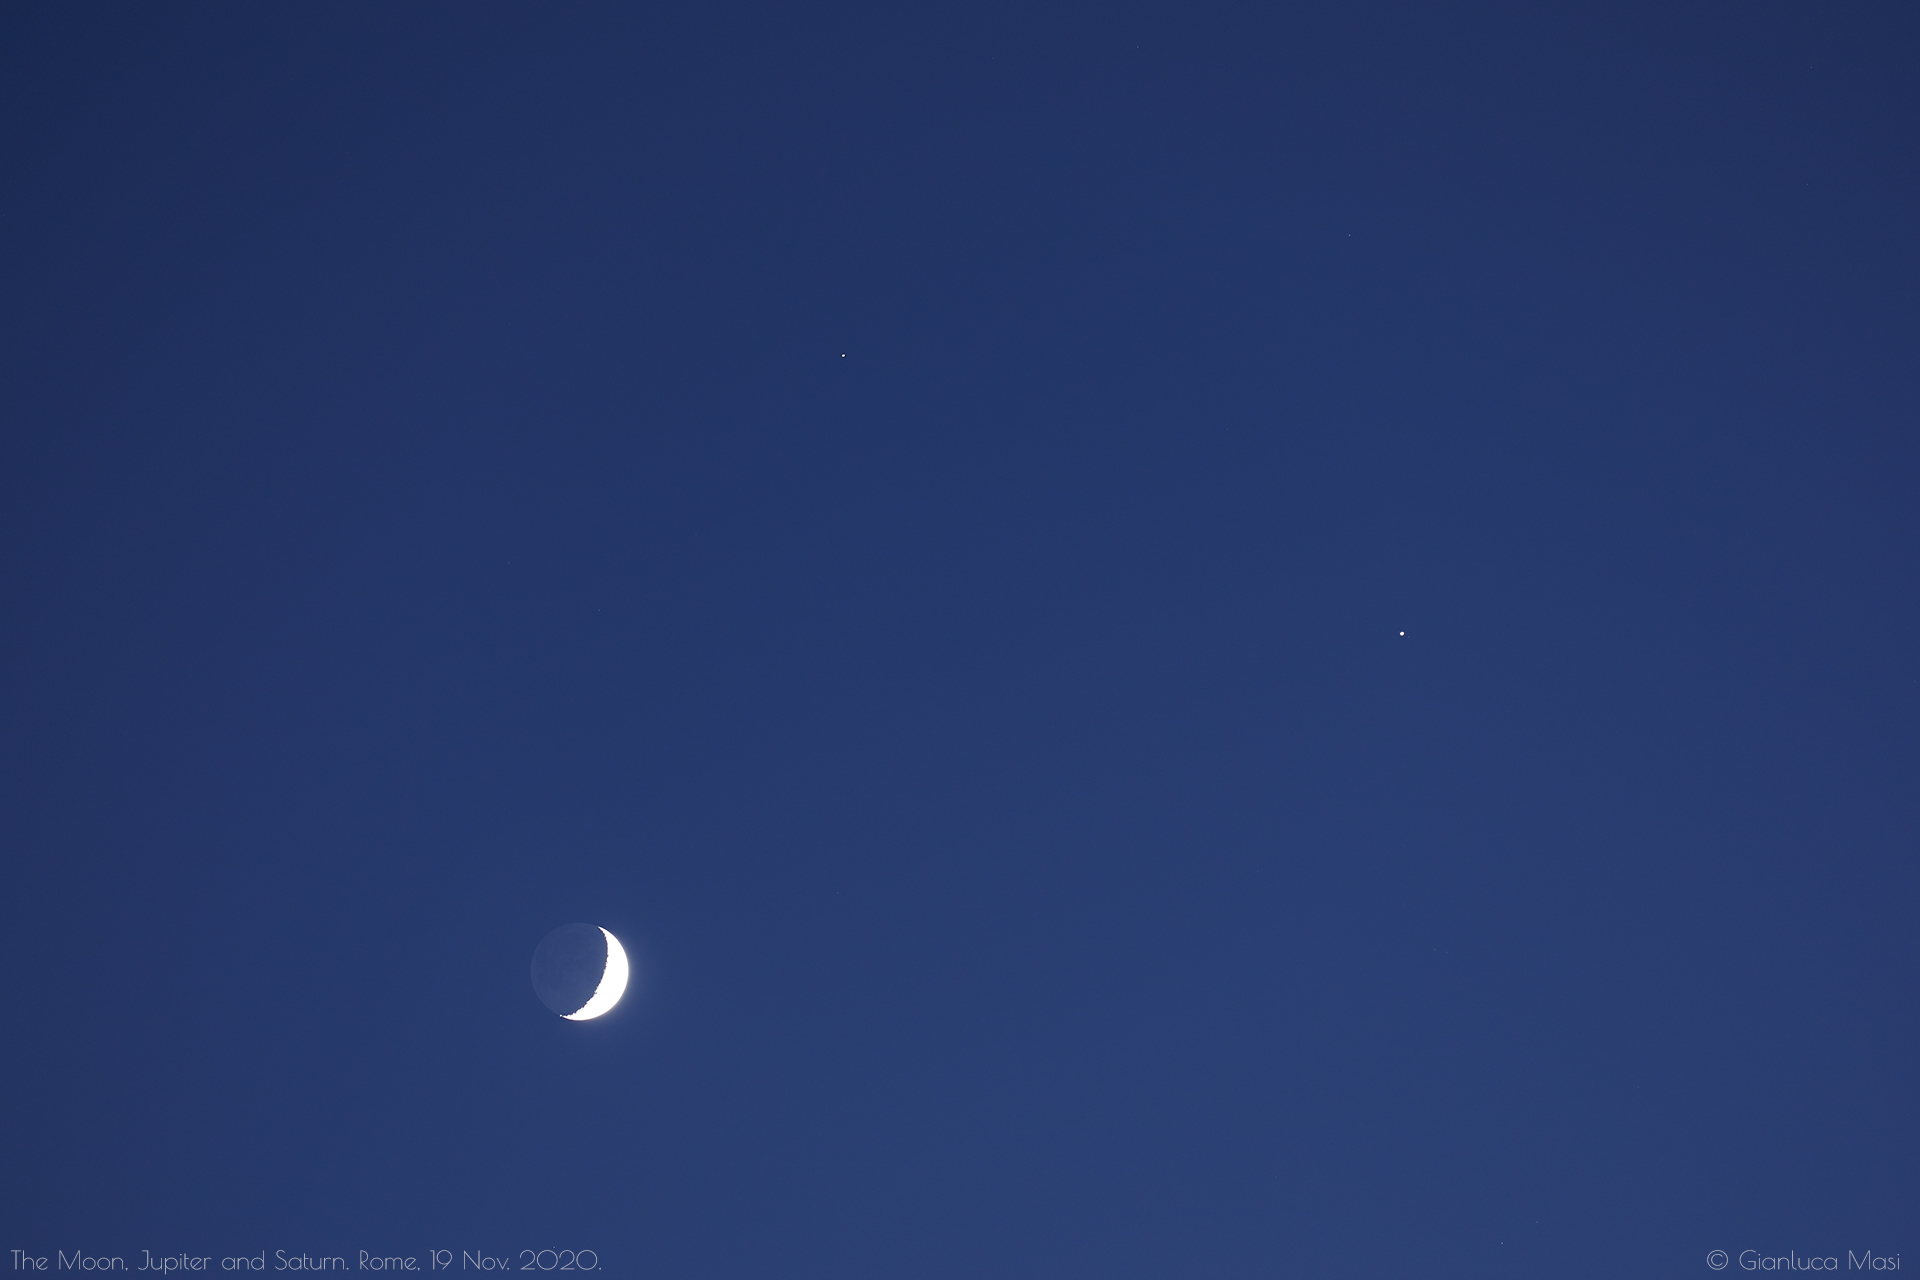 While the sky was still clear, Jupiter and Saturn showed so nicely close to the lunar disk. 19 Nov. 2020.